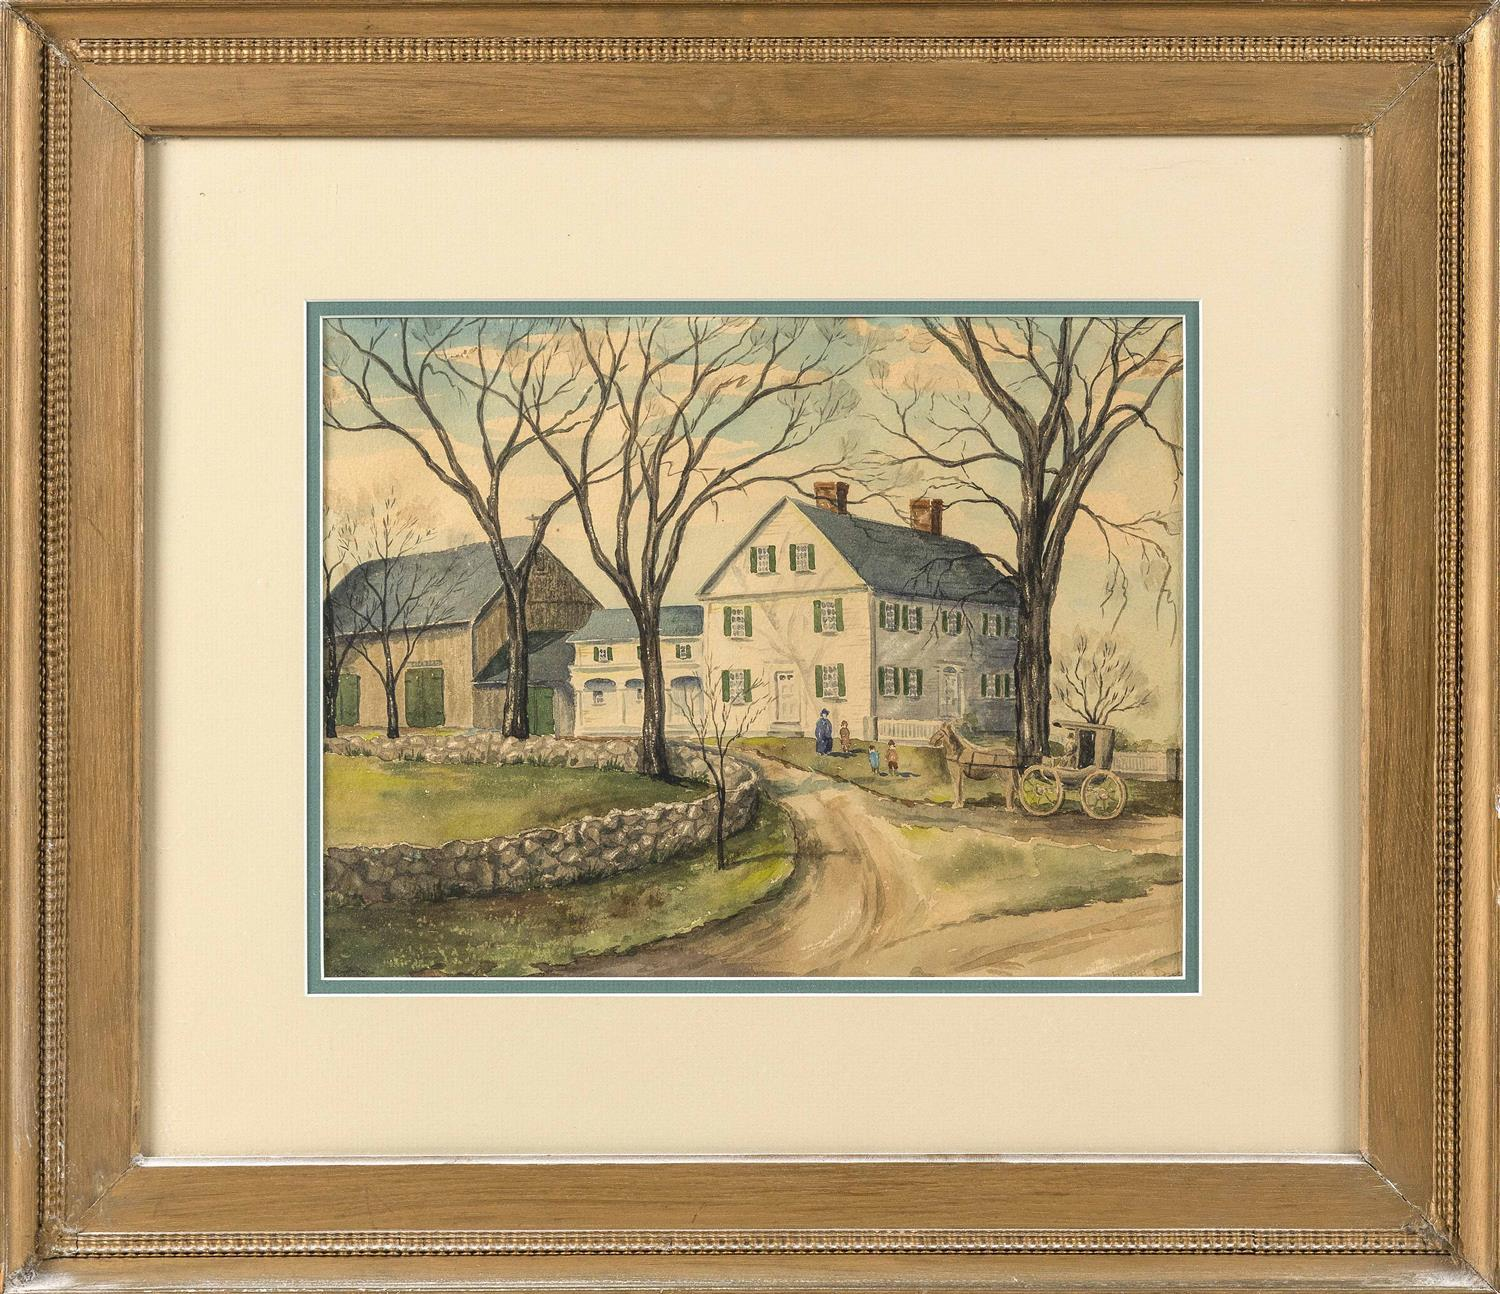 "WATERCOLOR OF THE ALLEN HOMESTEAD, MEDFIELD, MASSACHUSETTS Unsigned. 10"" x 13"" sight. Framed 19.5"" x 22.5""."